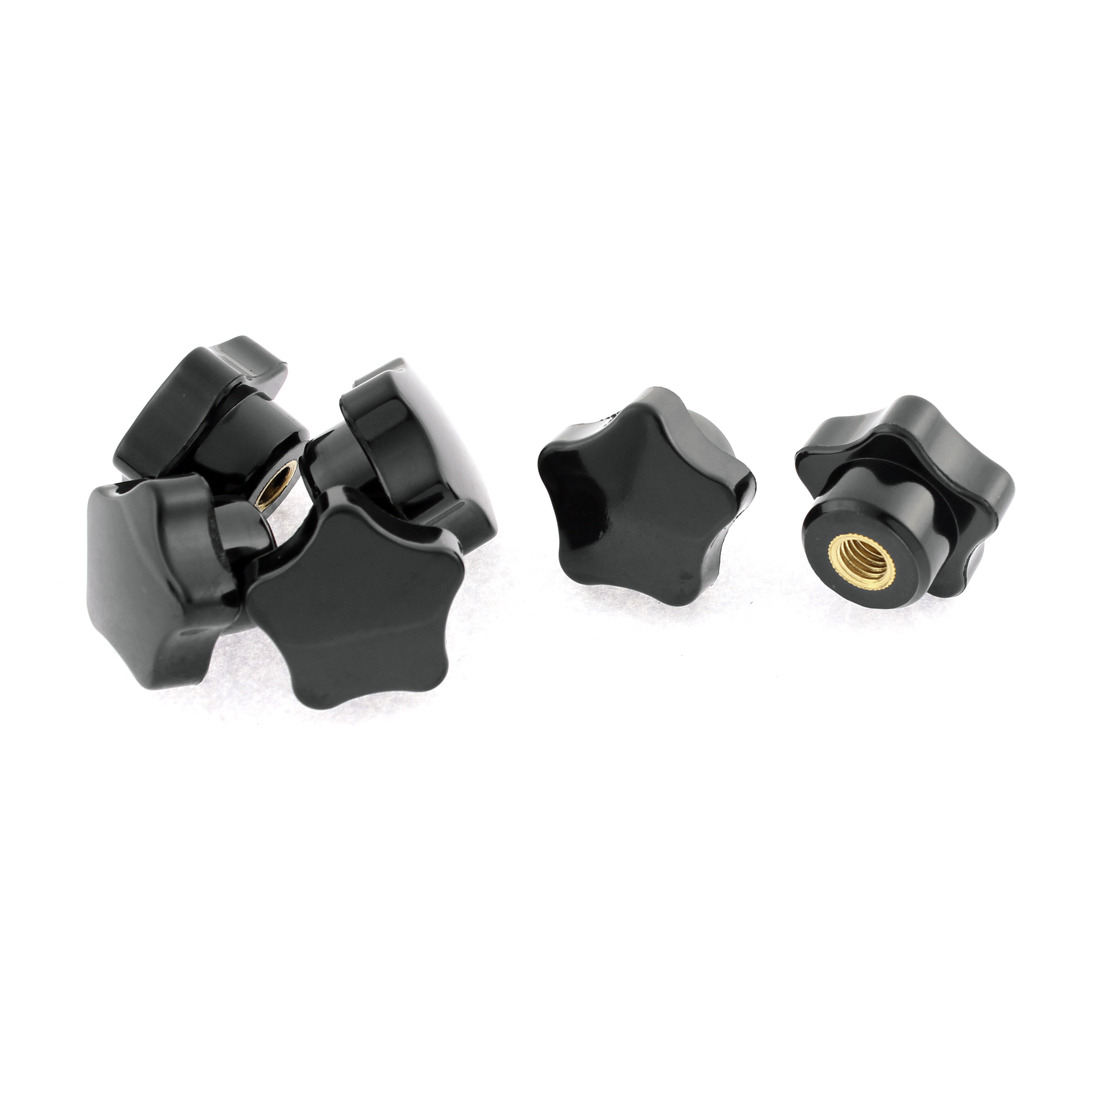 Plastic Star Head M6 x 32mm Female Thread Clamping Knob Black 6 Pcs